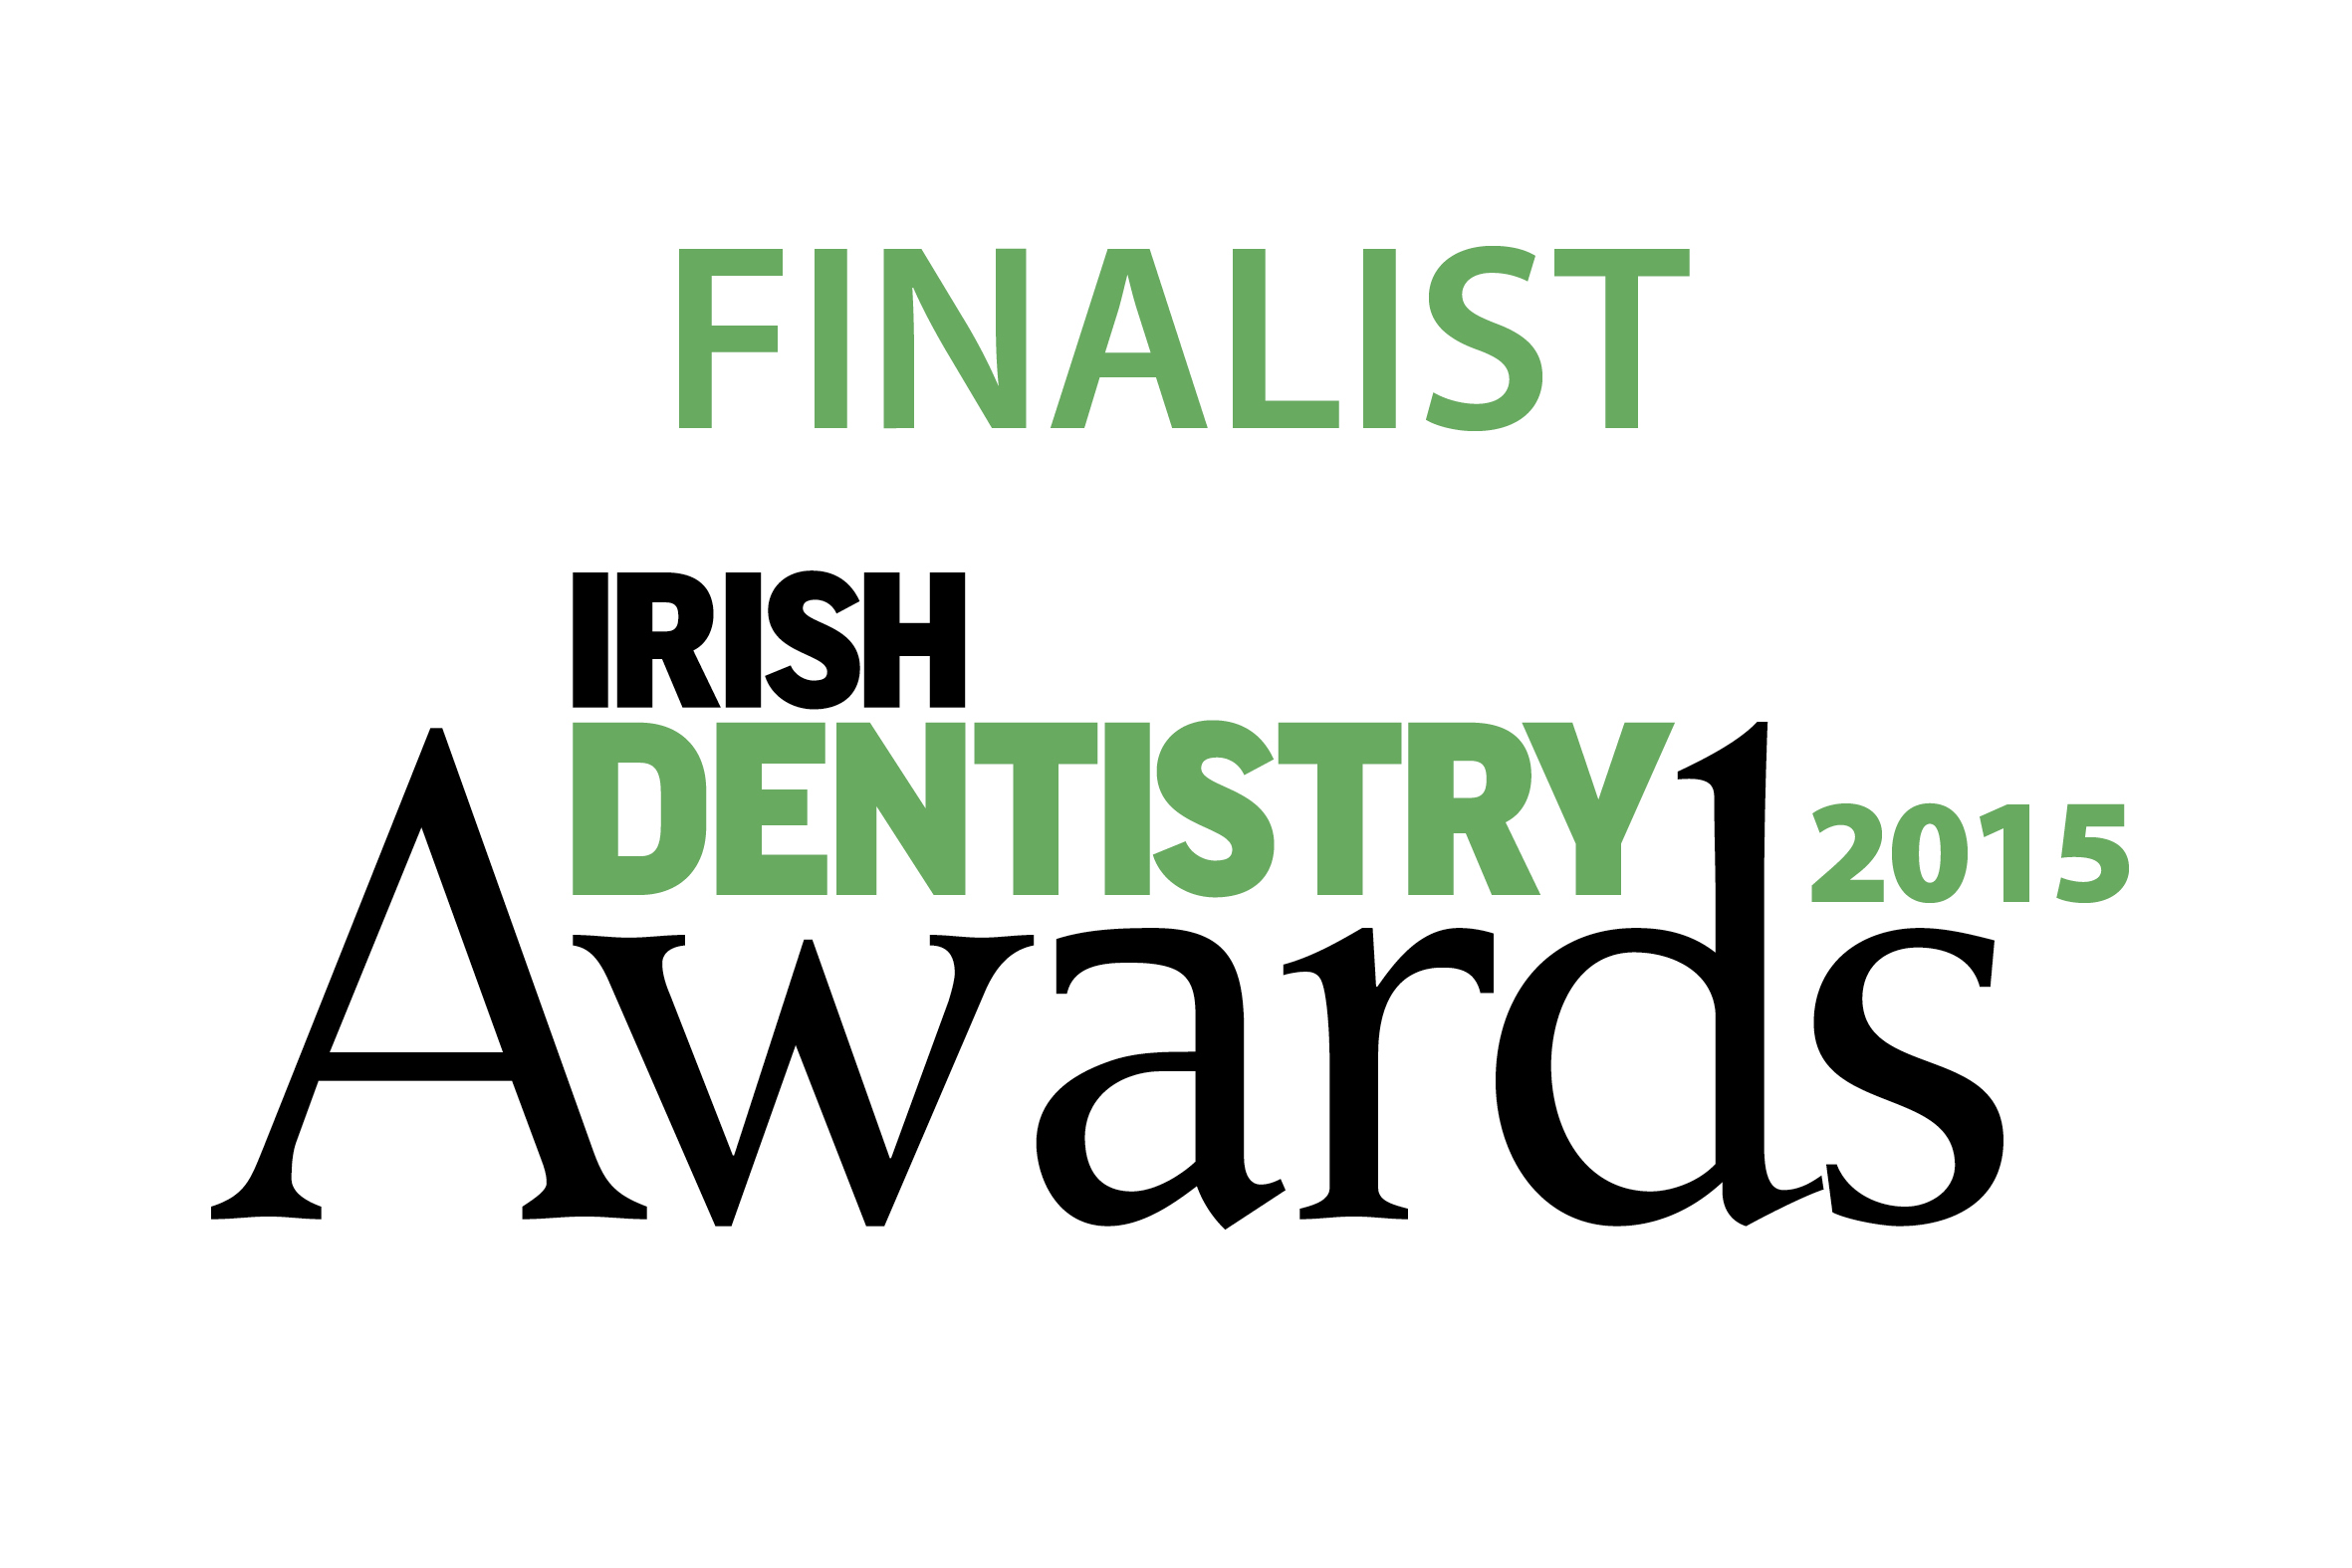 Irish Dentistry Awards 2015